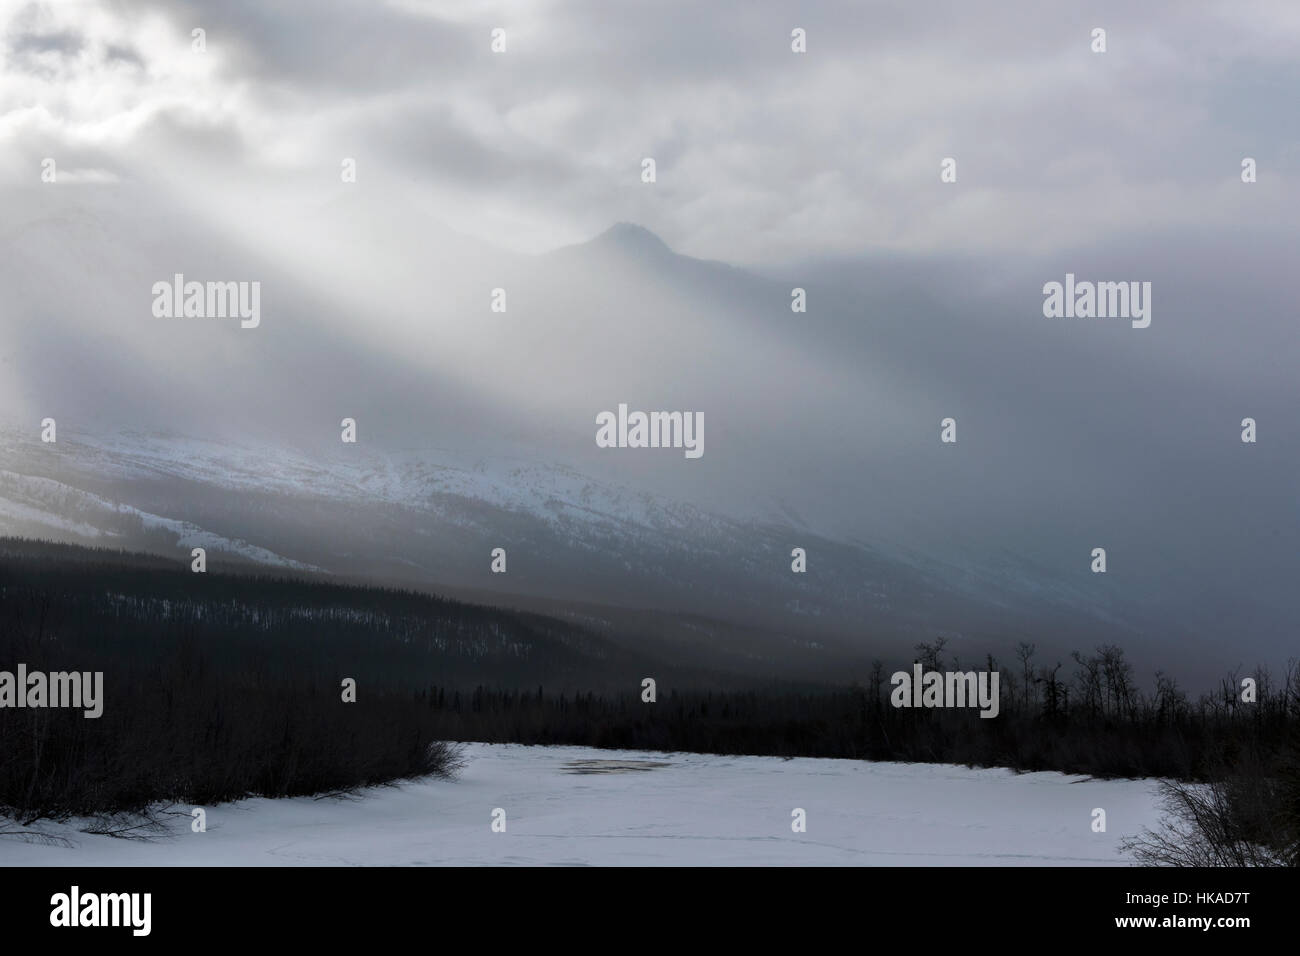 Winter storm clouds, Kluane Mountains and Dezadeash River, near Haines Junction, Yukon Territory - Stock Image